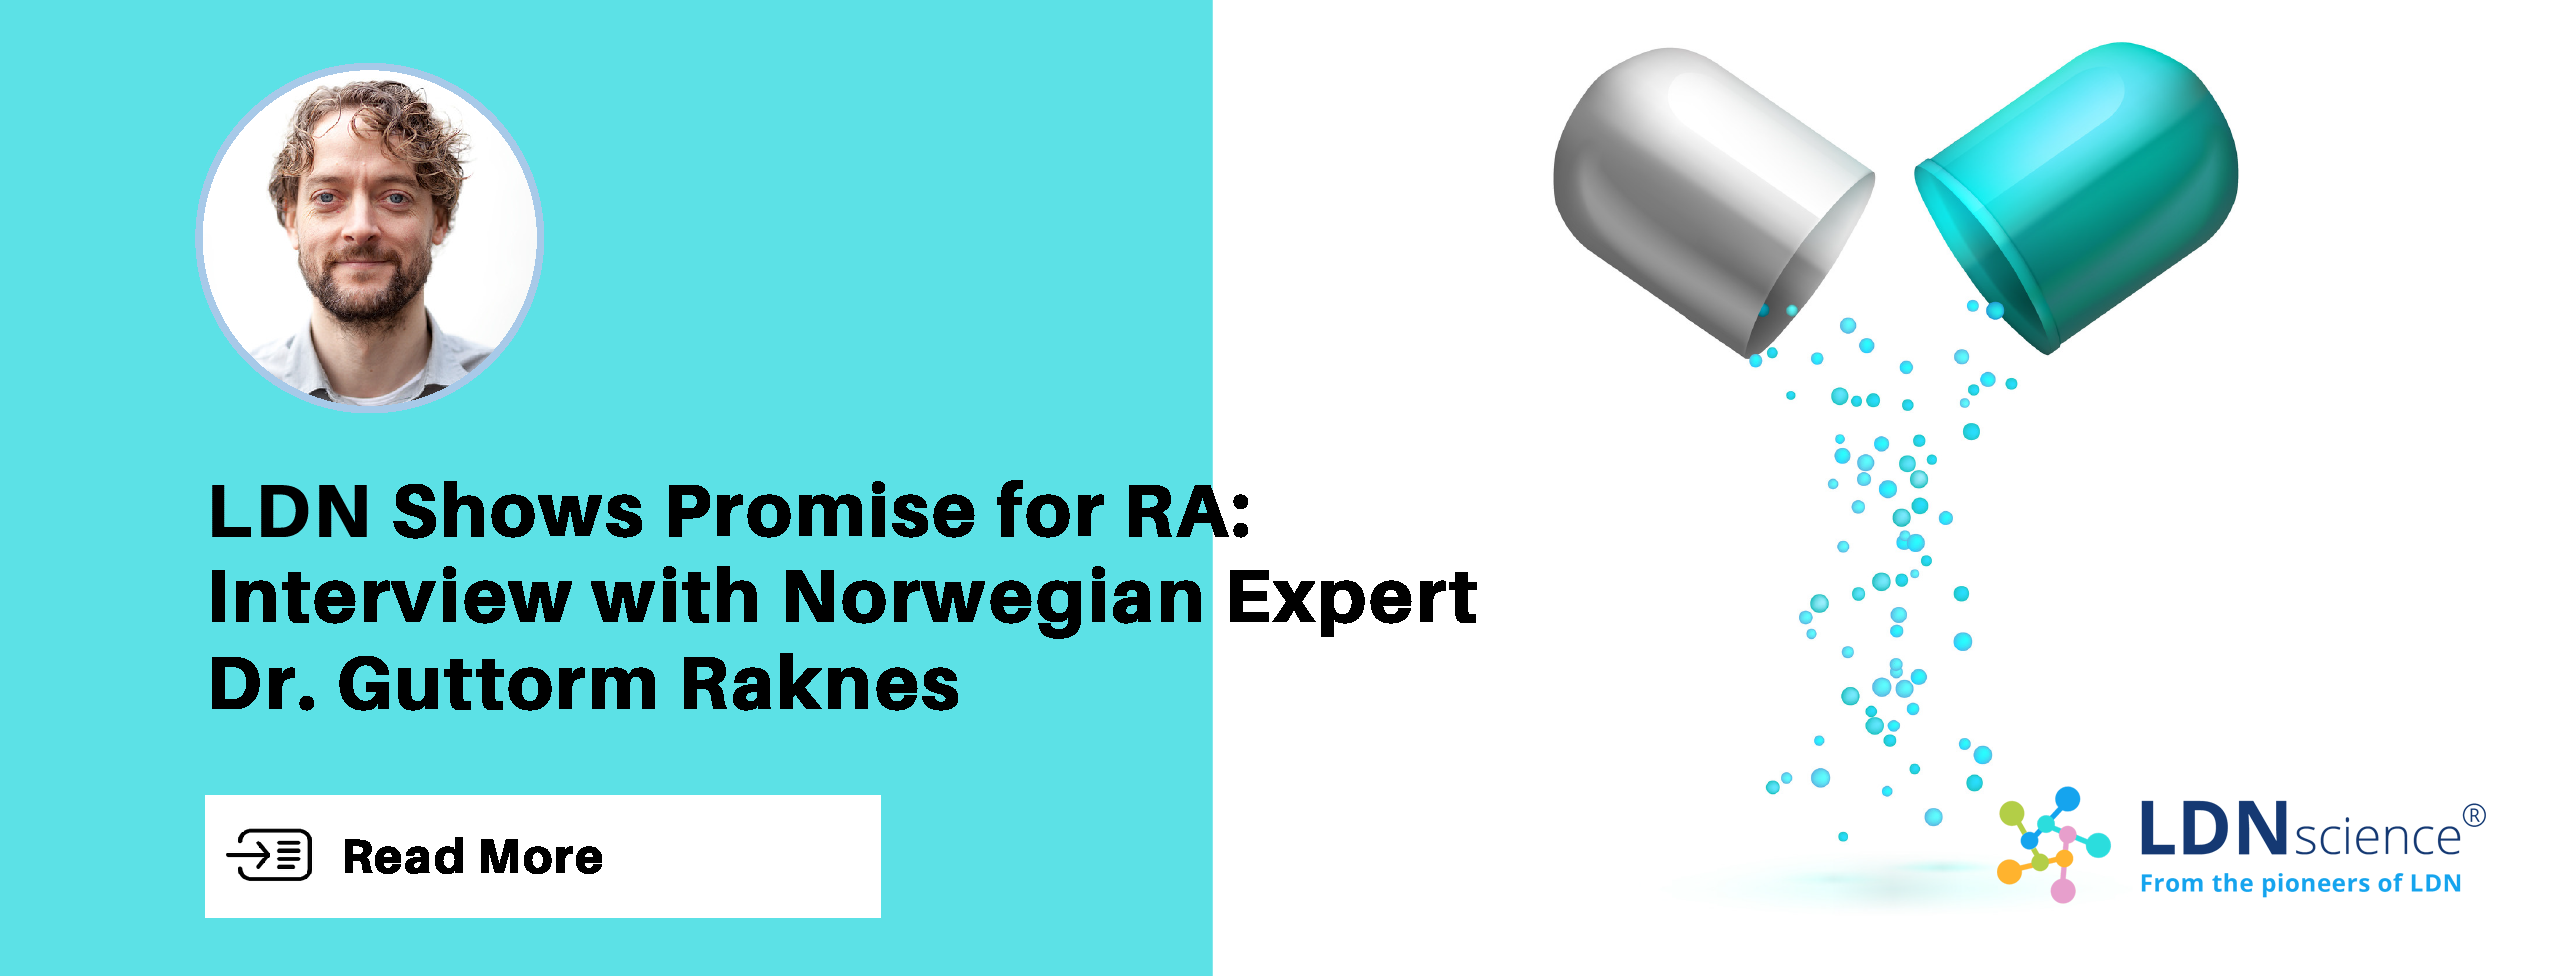 LDNscience News Alerts - LDN Shows Promise for RA: Interview with Norwegian Expert Dr. Guttorm Raknes